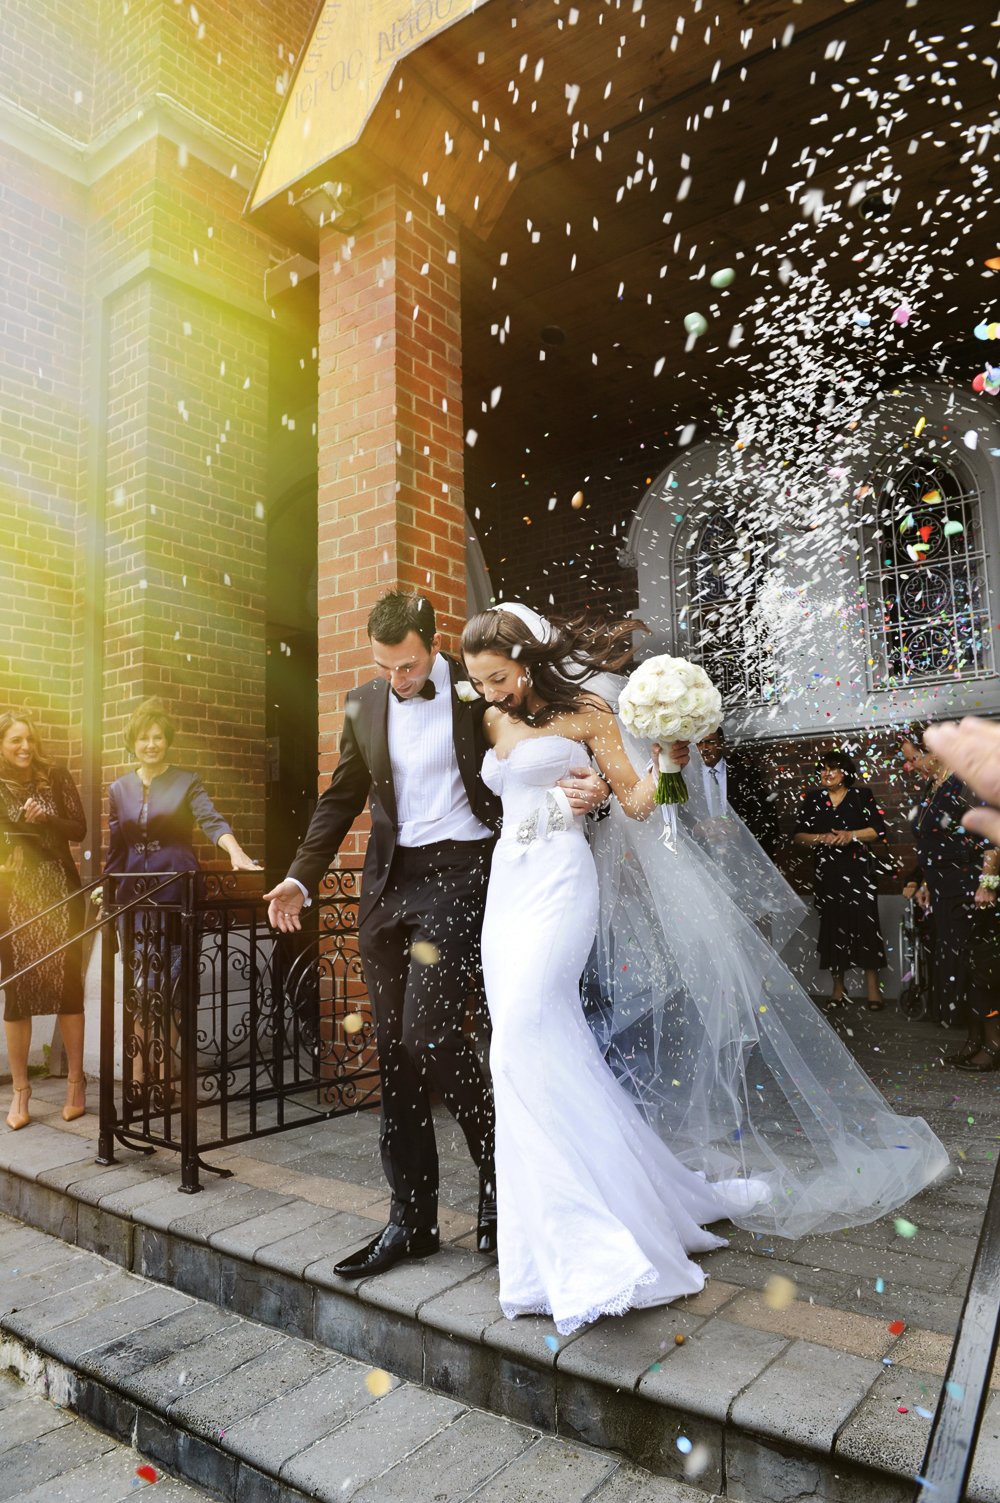 Married, wedding, candid, confetti, Greek